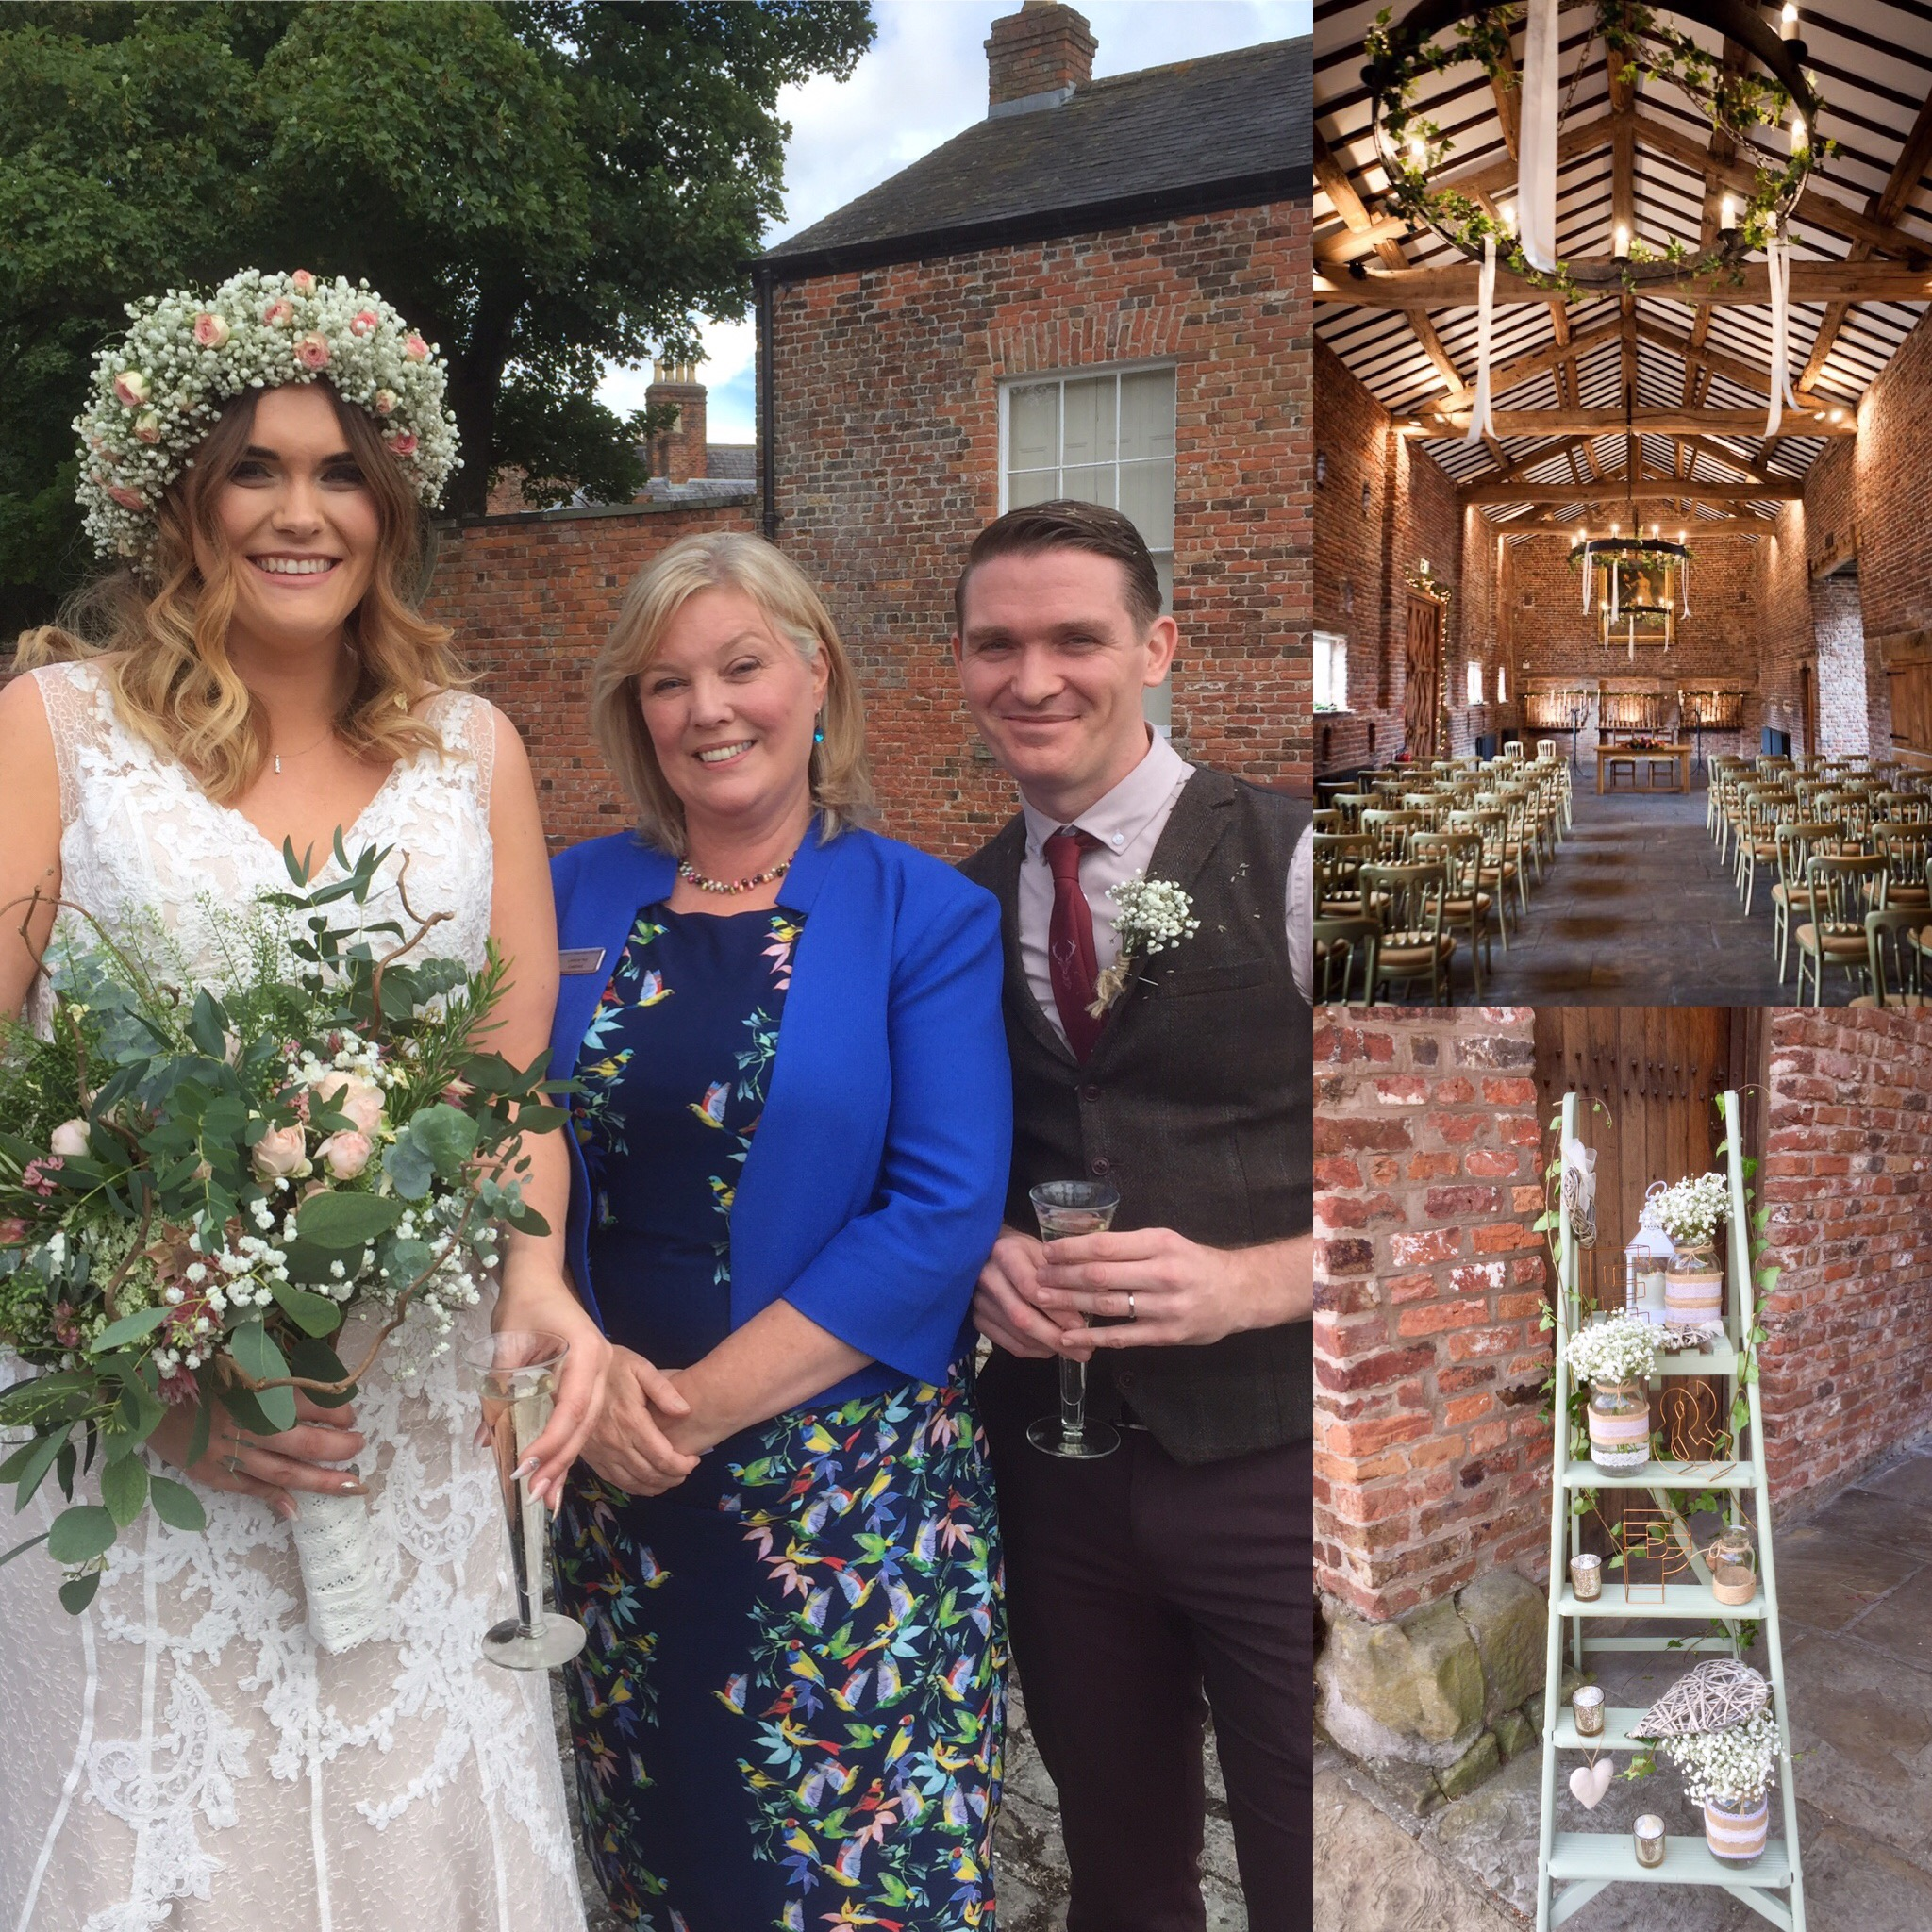 Southport Wedding Celebrant, Lorraine Hull